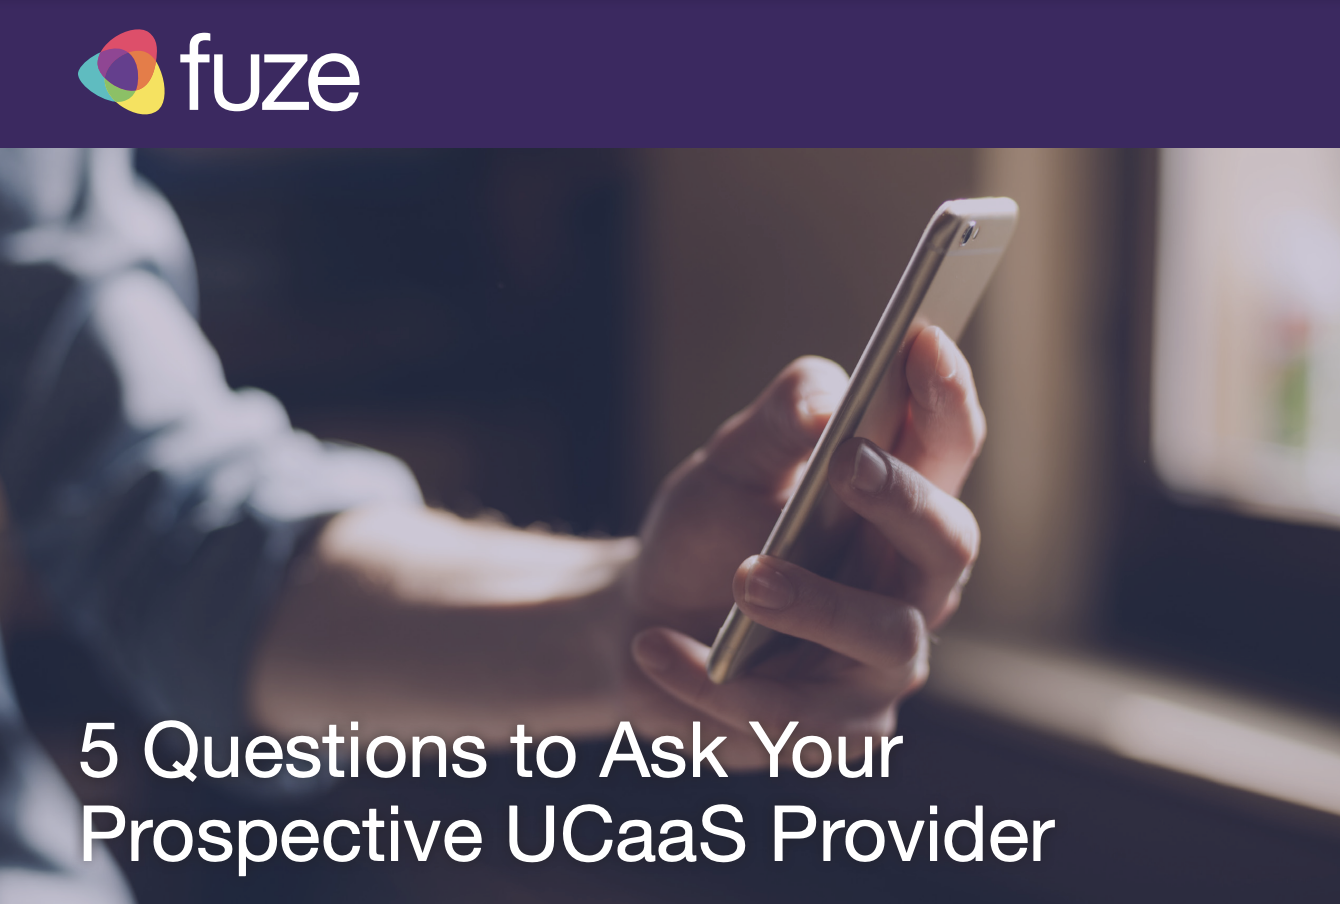 5-questions-to-ask-your-prospective-ucaas-provider-wh